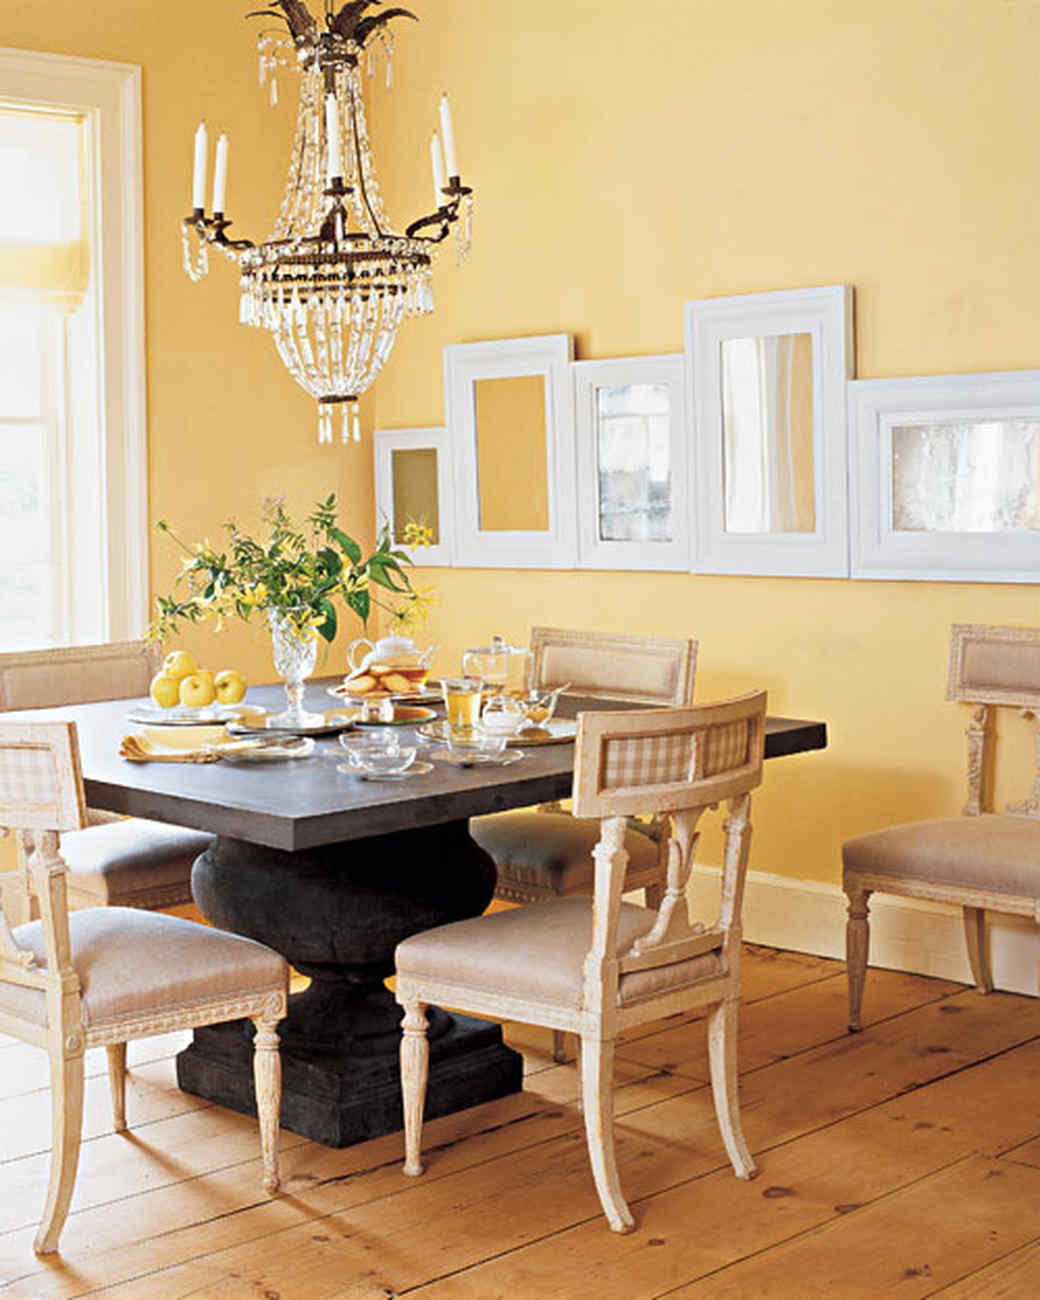 Amazing decorating with yellow walls